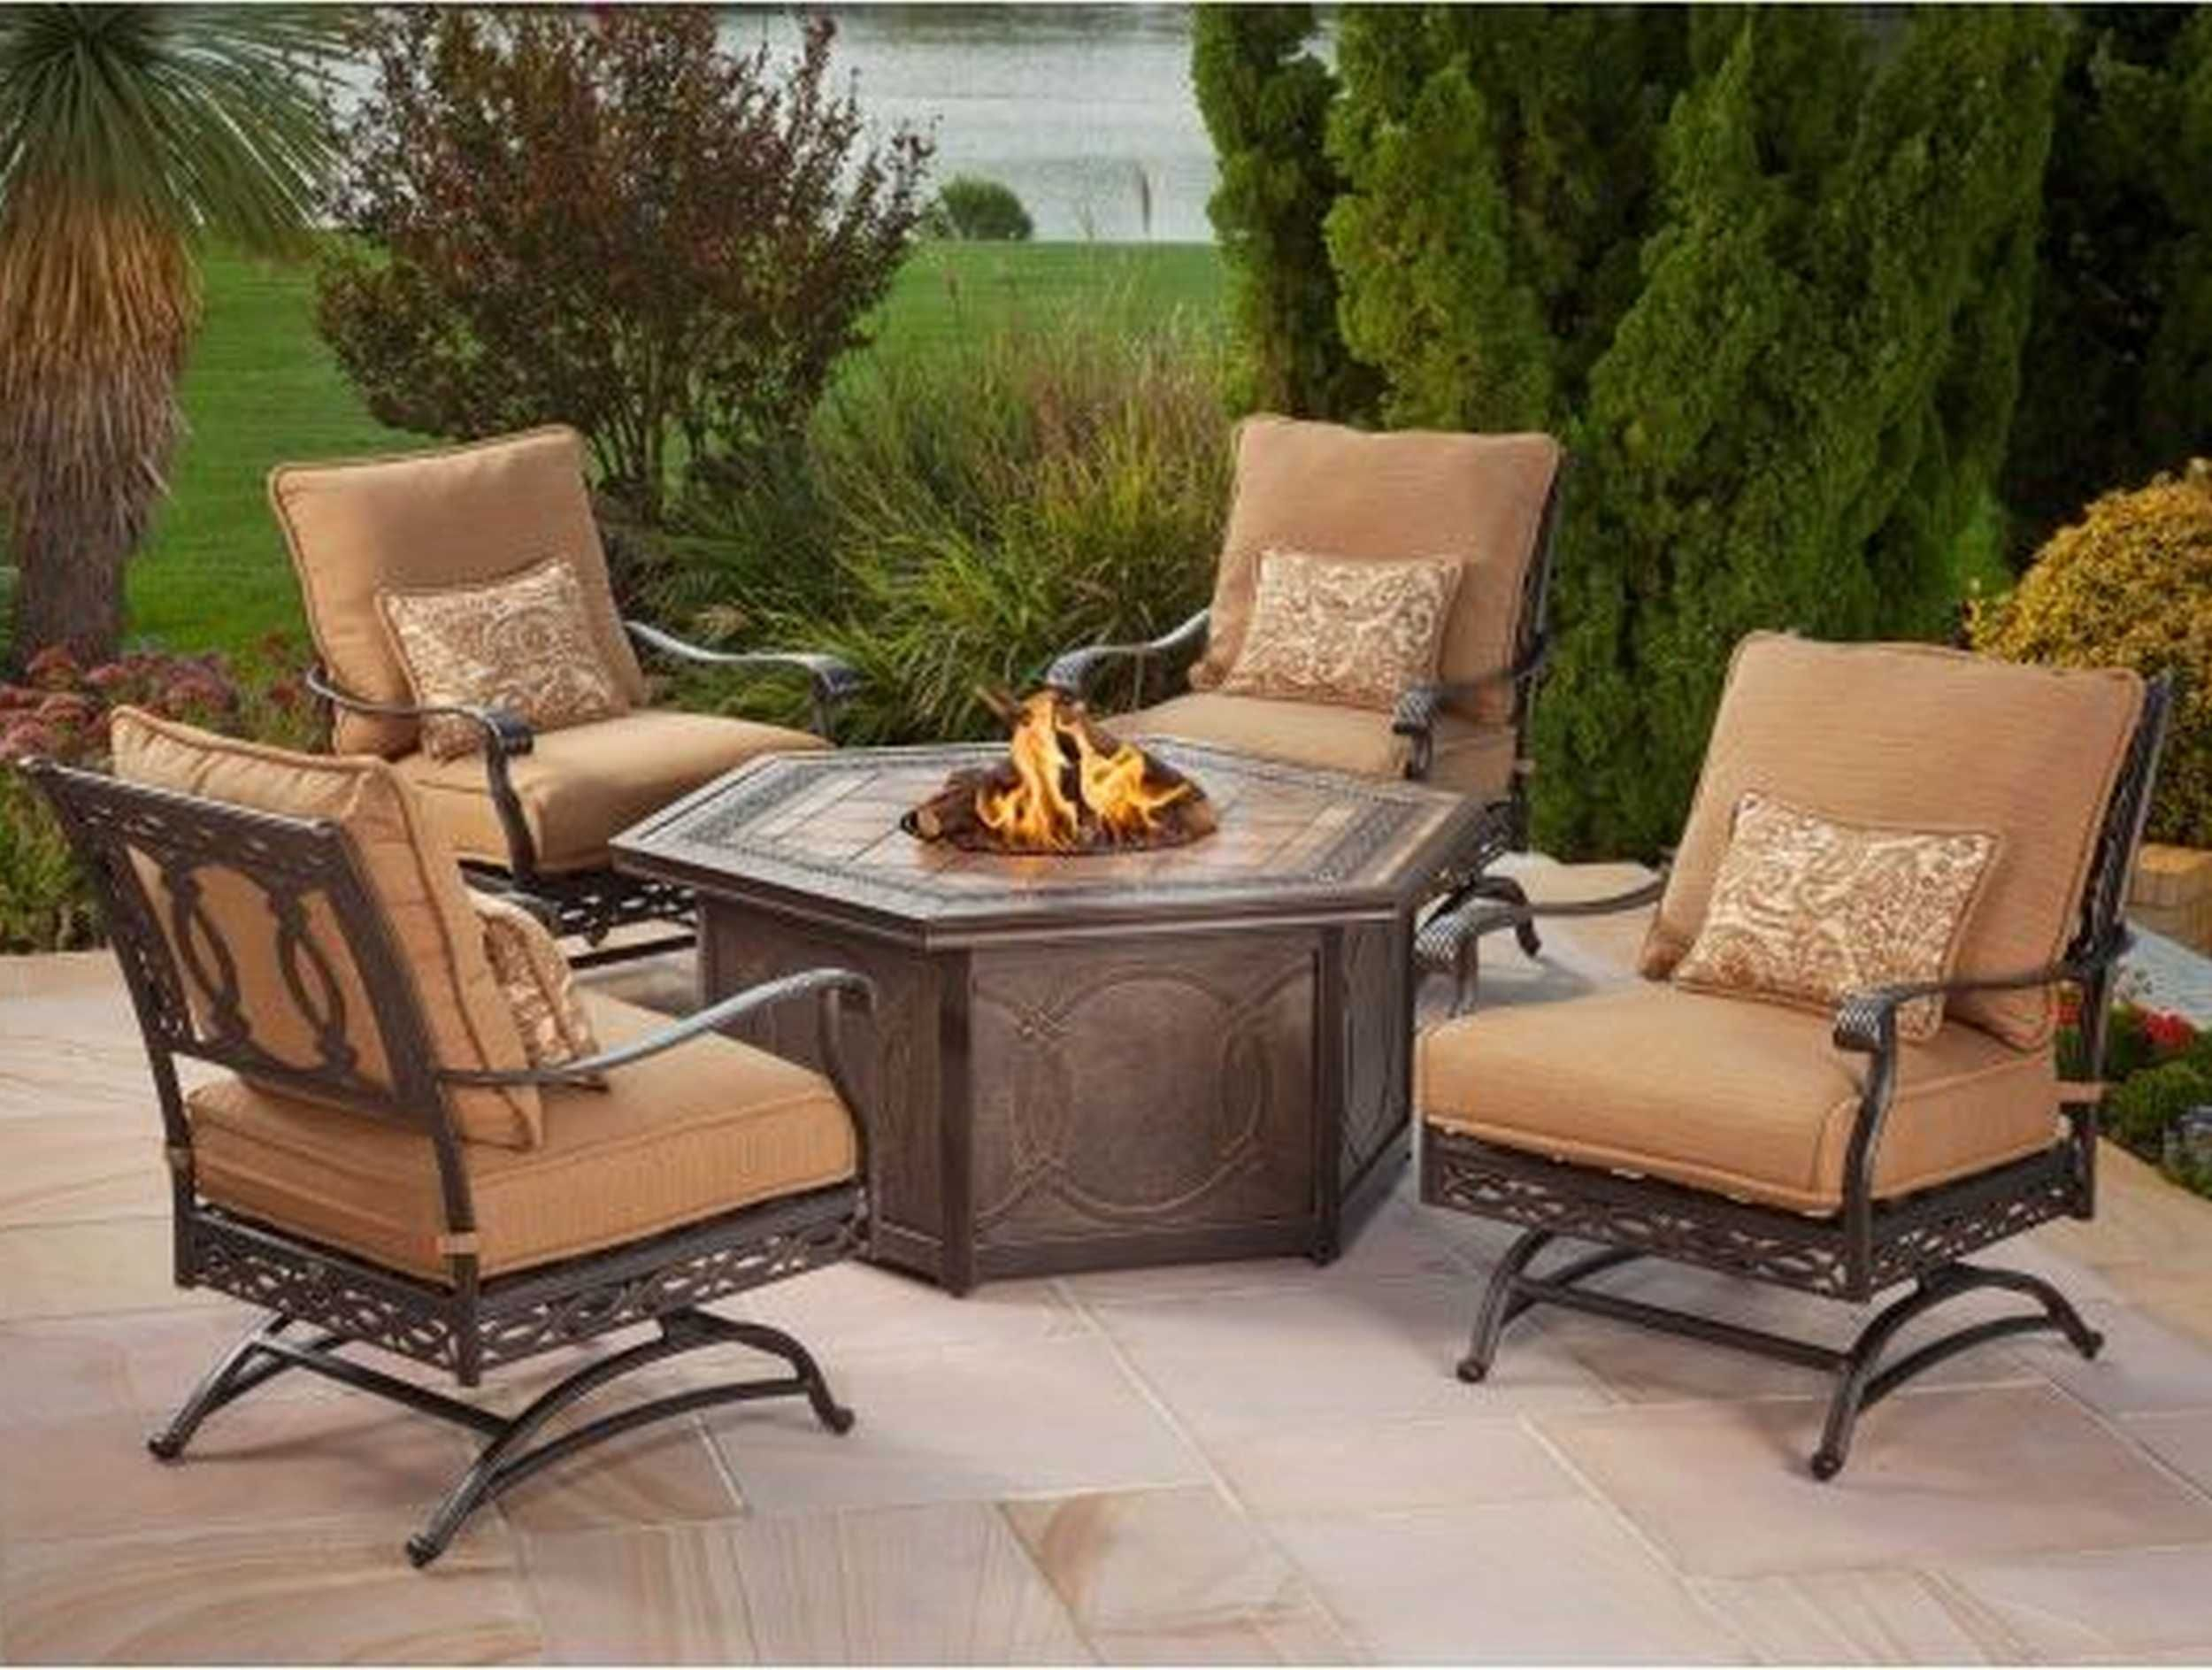 Where To Buy Patio Furniture In Indianapolis